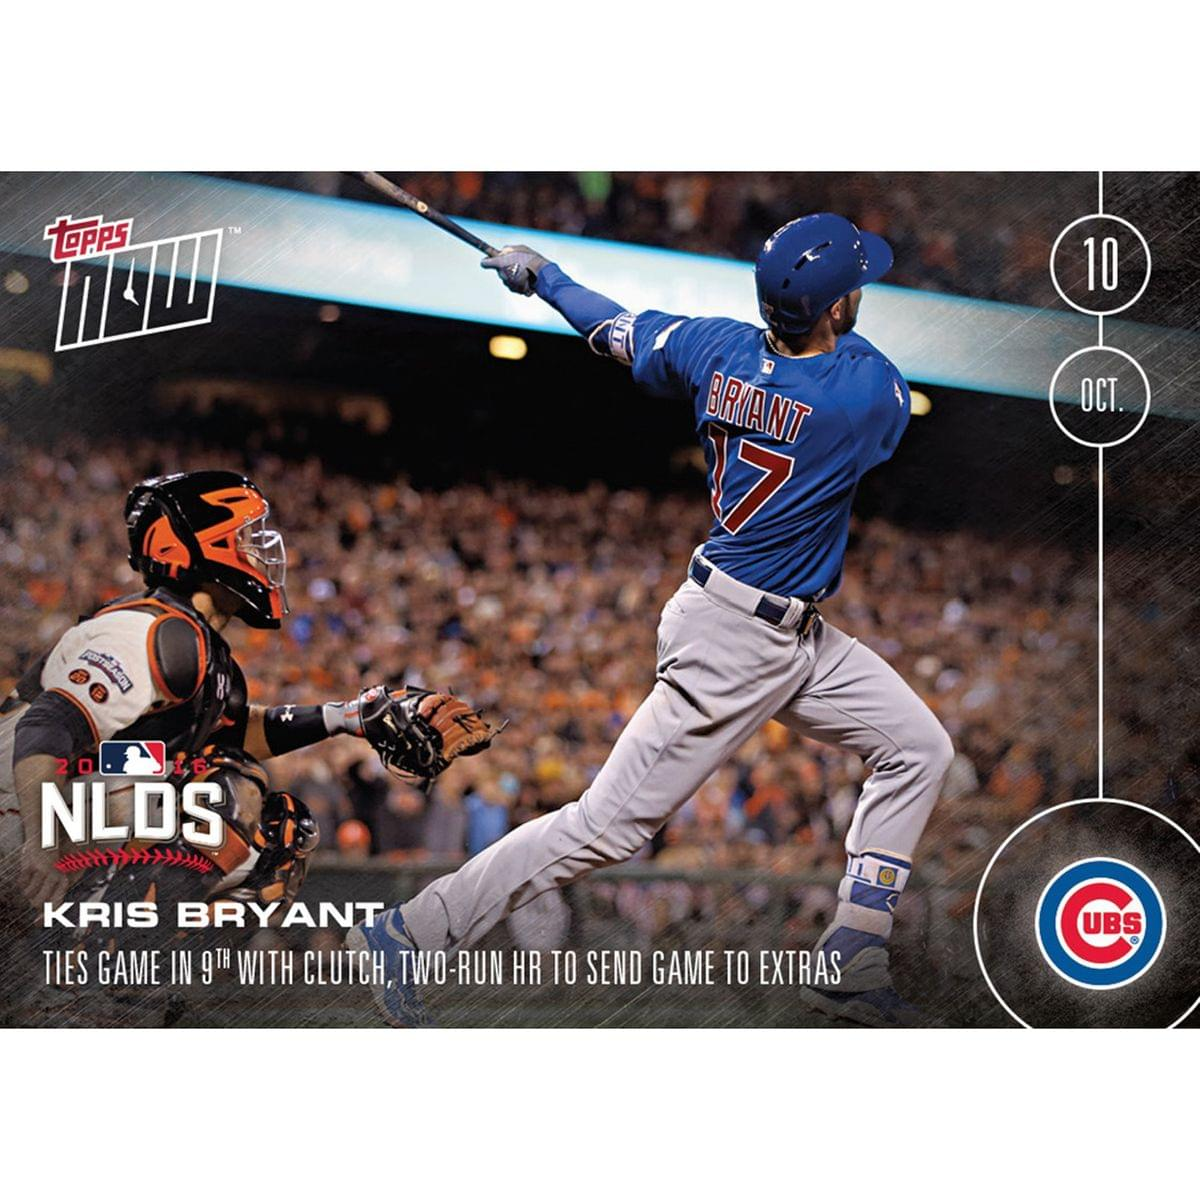 MLB Chicago Cubs Kris Bryant #566 Topps NOW Trading Card